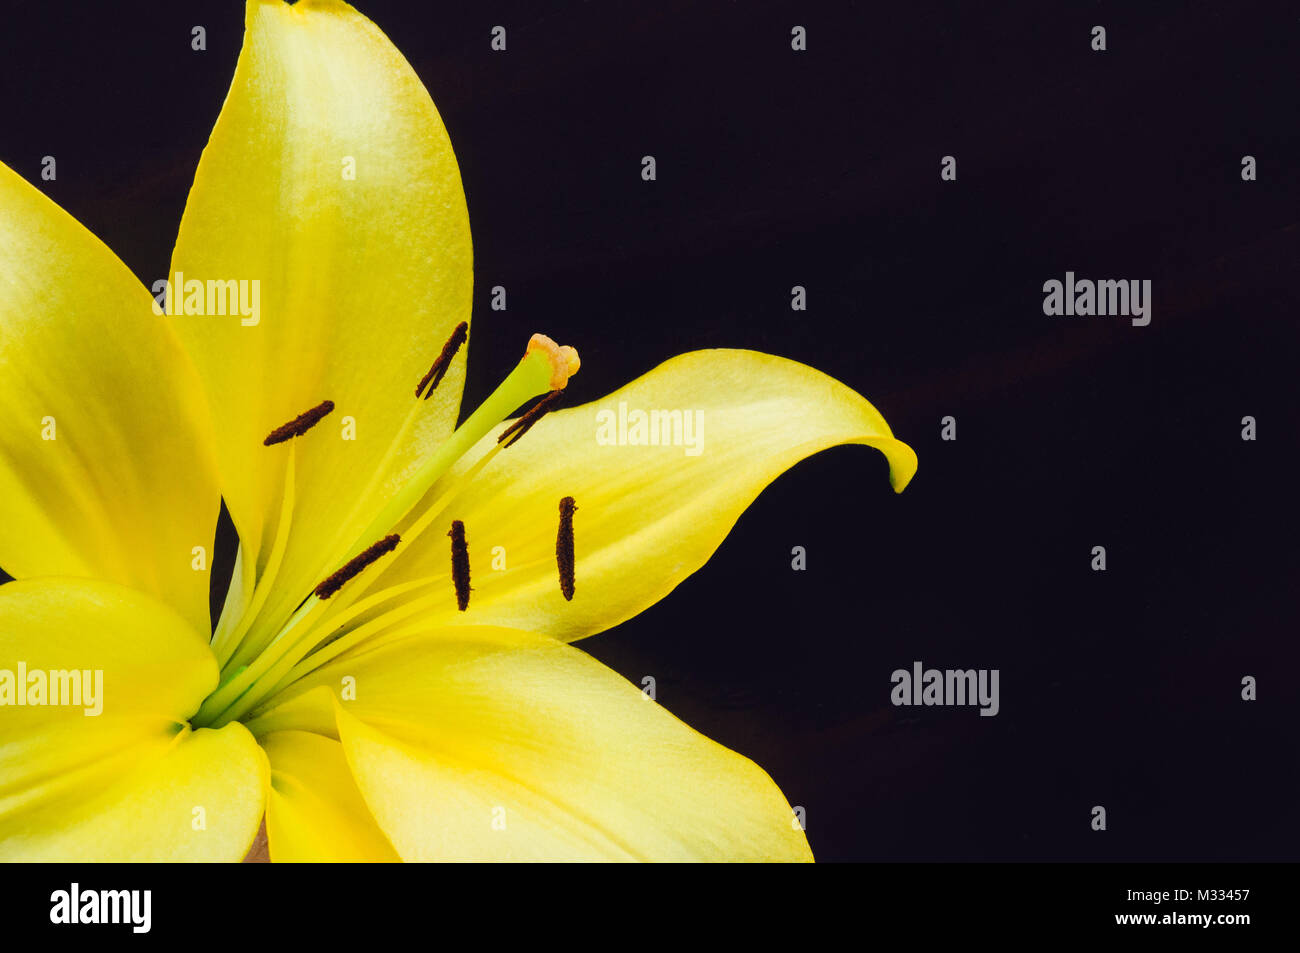 Single Yellow Lily Flower on Dark Backround - Stock Image